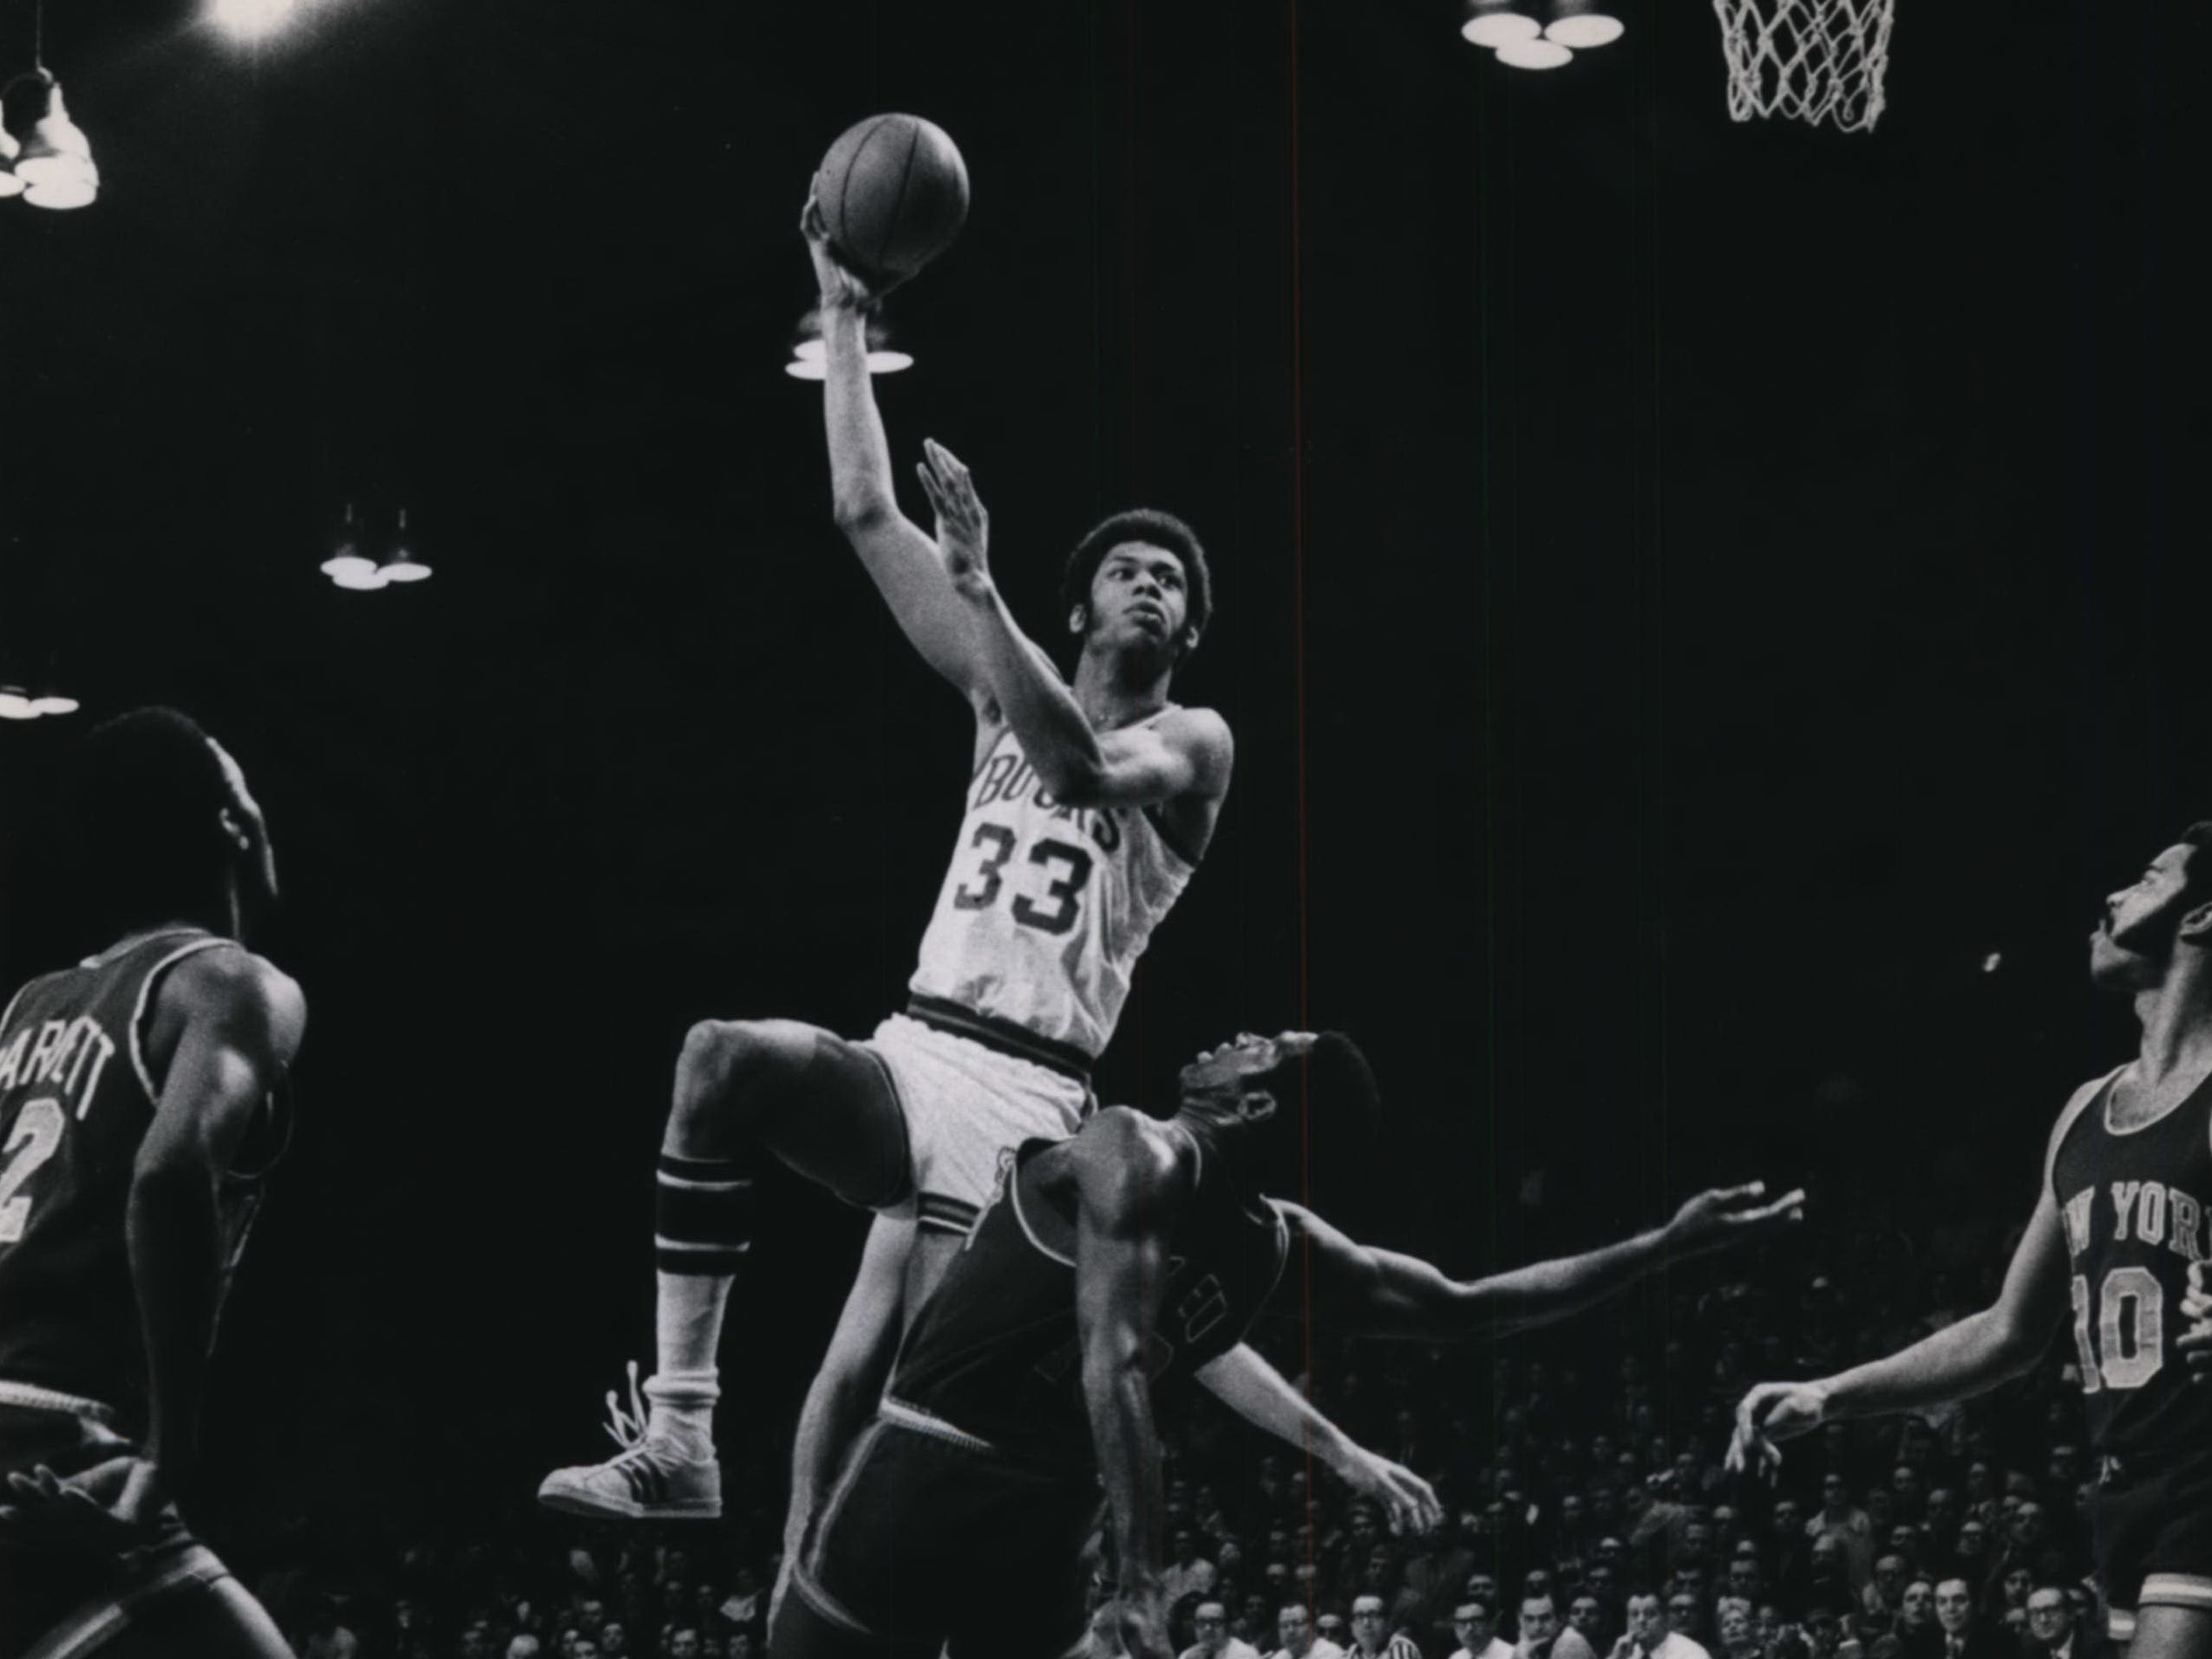 1970: Bucks center Lew Alcindor (later known as Kareem Abdul-Jabbar) fires of his trademark sky hook as the Knicks' Willis Reed tries to convince the refs he's been fouled during Game 4 of the Eastern Conference finals April 19, 1970, at the Milwaukee Arena. The Knicks won the game, 117-105, and the next day won the series. The Bucks, in their first year in the postseason and second year in the league, had beaten the Philadelphia 76ers in the first round of the playoffs. This photo was published in the April 20, 1970, Milwaukee Journal.